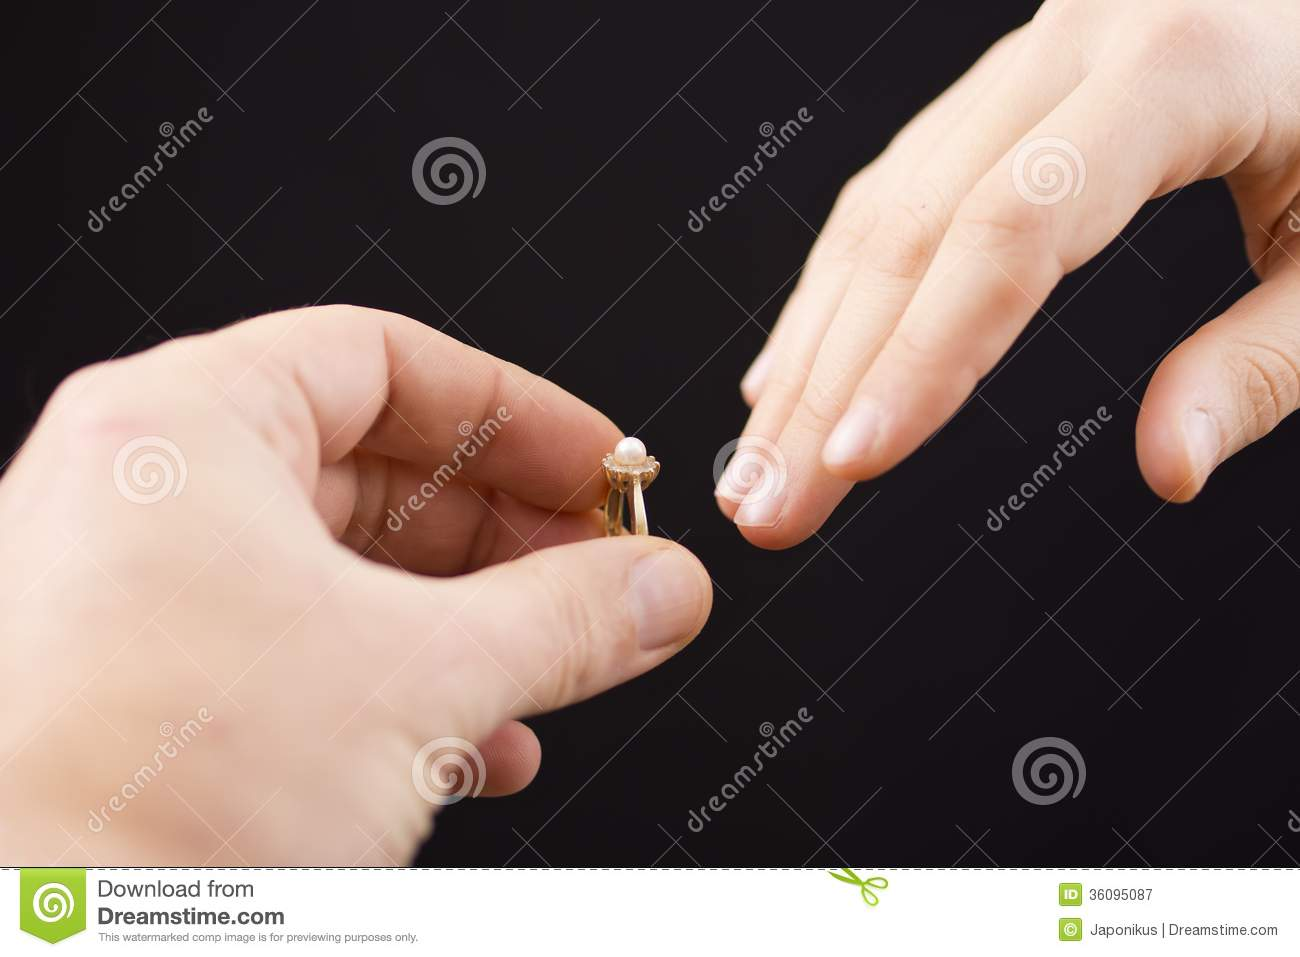 Putting A Ring On Girl\'s Hand Stock Image - Image: 36095087